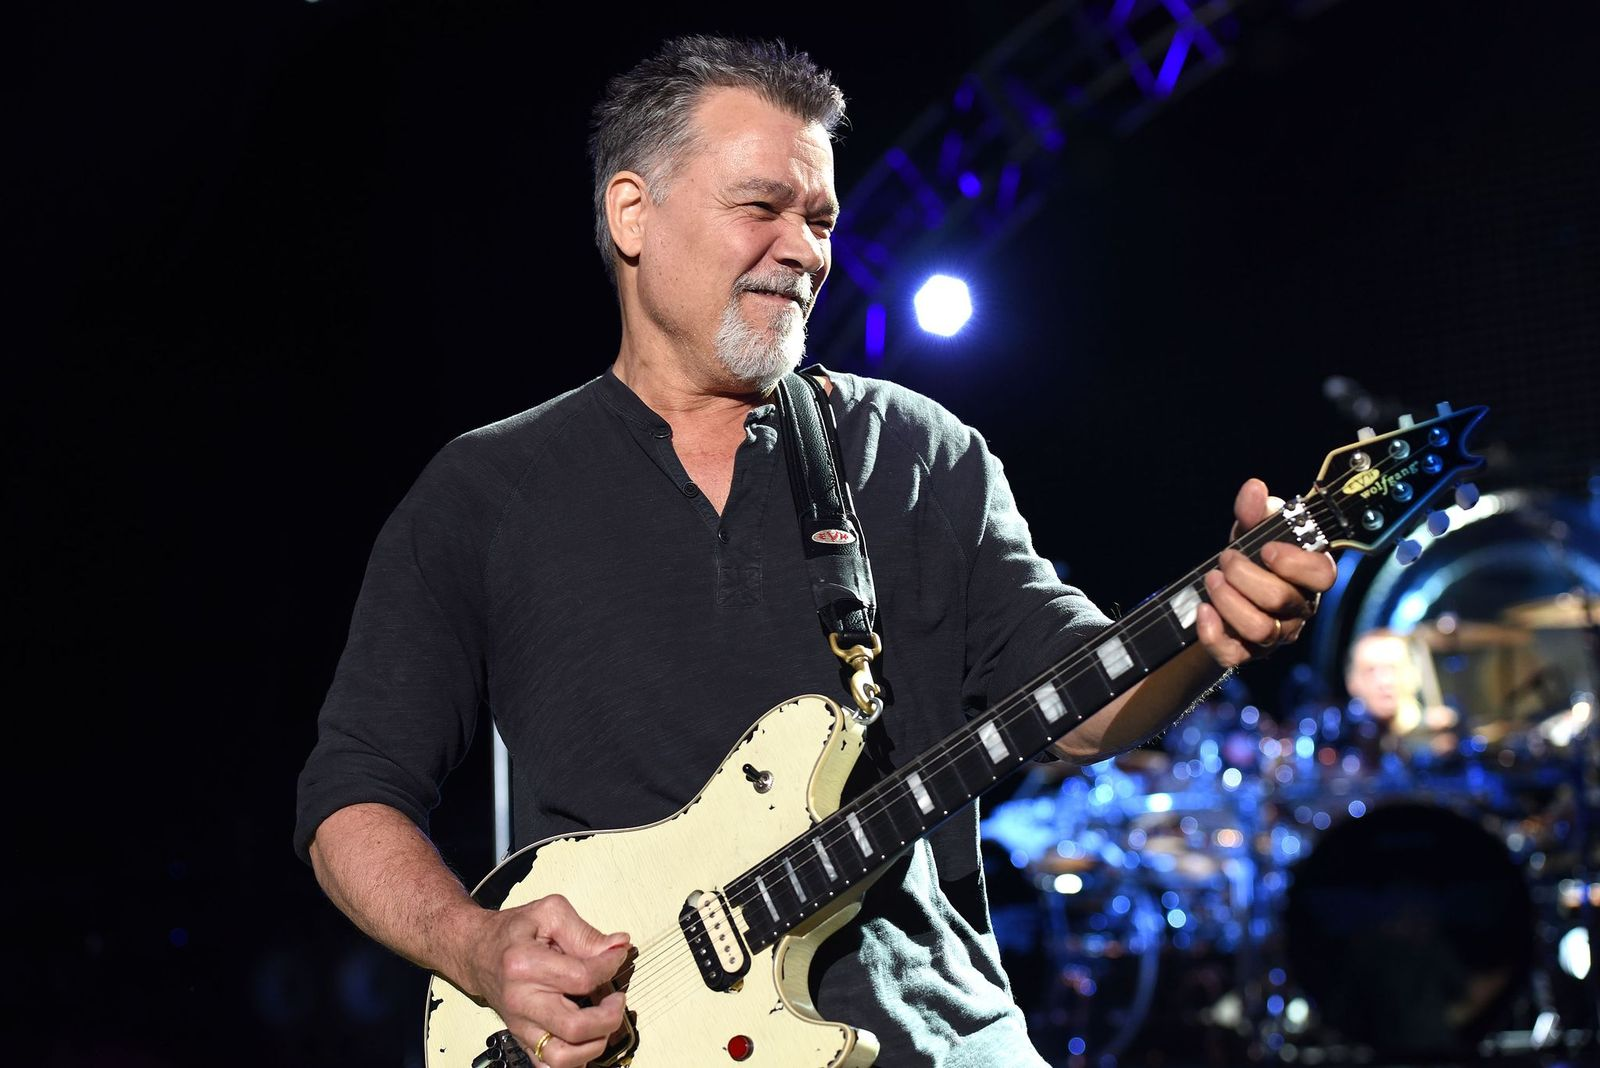 Eddie Van Halen of Van Halen performs at the Shoreline Amphitheatre on July 16, 2015, in Mountain View, California | Photo: C. Flanigan/Getty Images